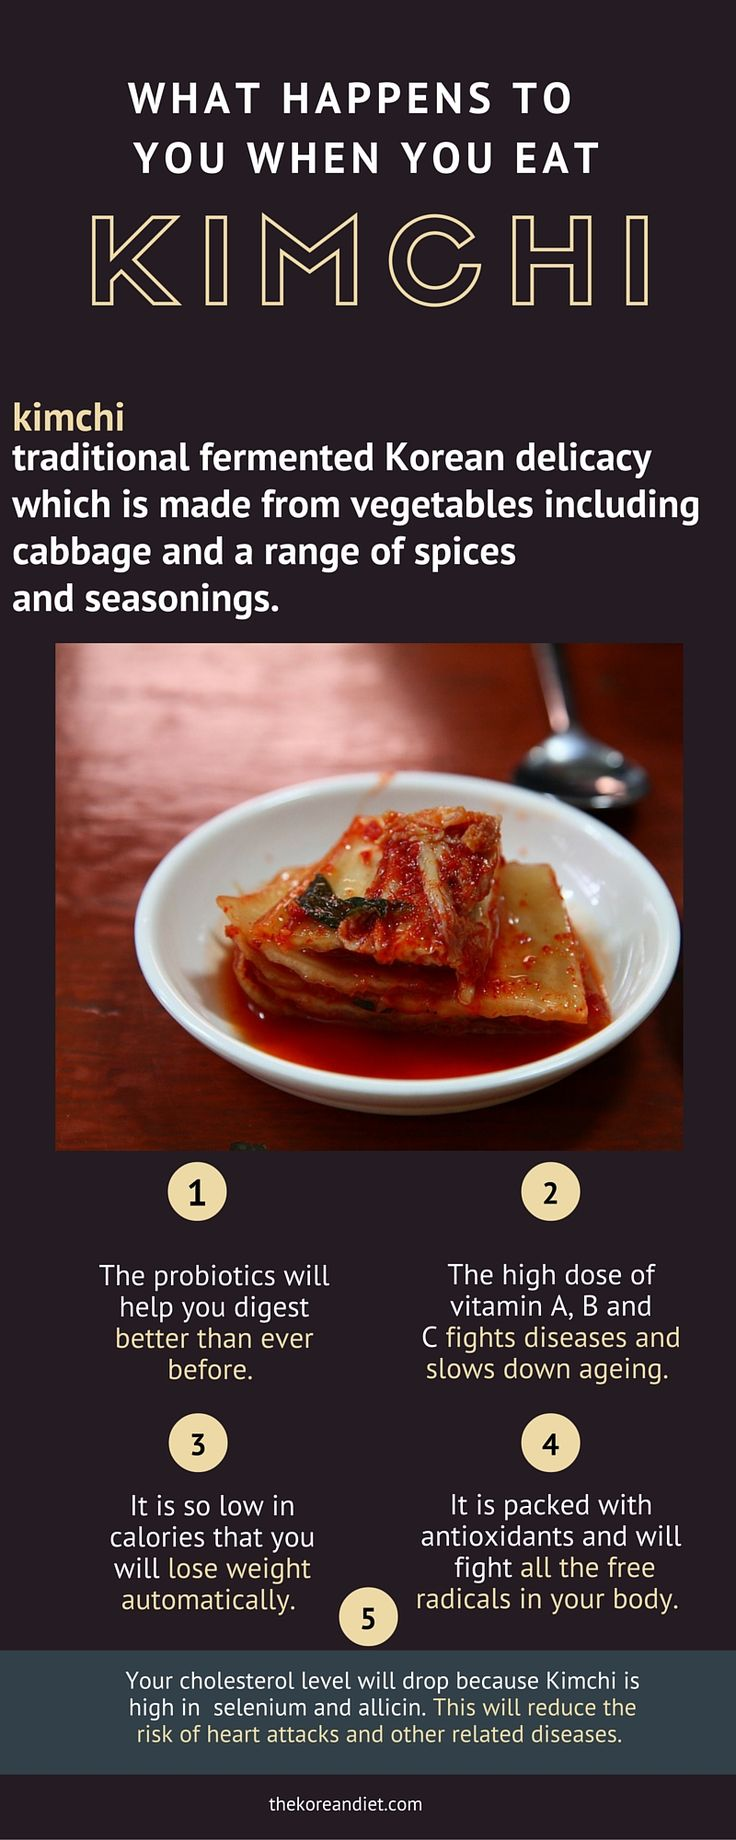 This is what happens to you when you eat Kimchi. http://thekoreandiet.com/kimchi-diet/ #Korean #Food